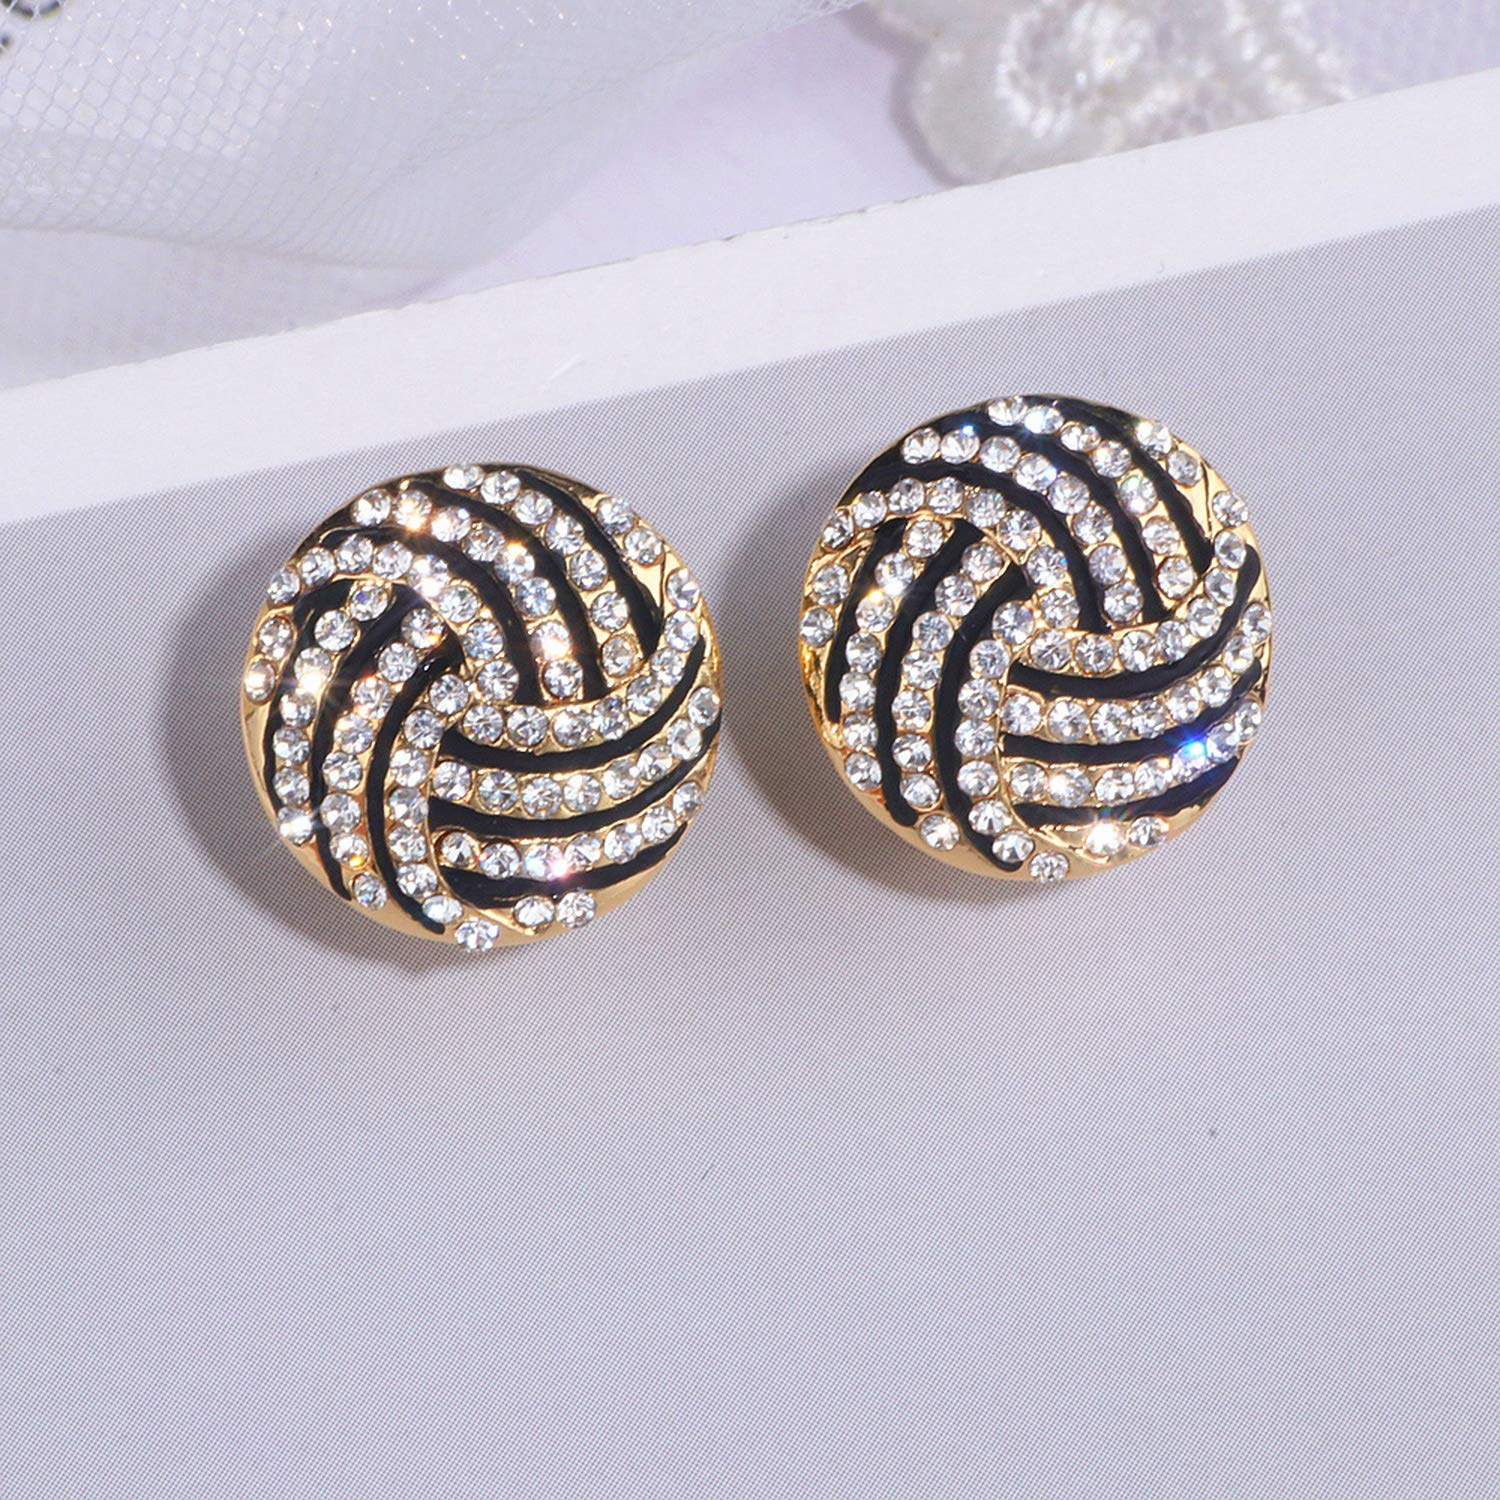 Trendy Element Gold Color Round Stud Earrings for Women Shining Full Crystal Circle Earrings Wedding Jewelry